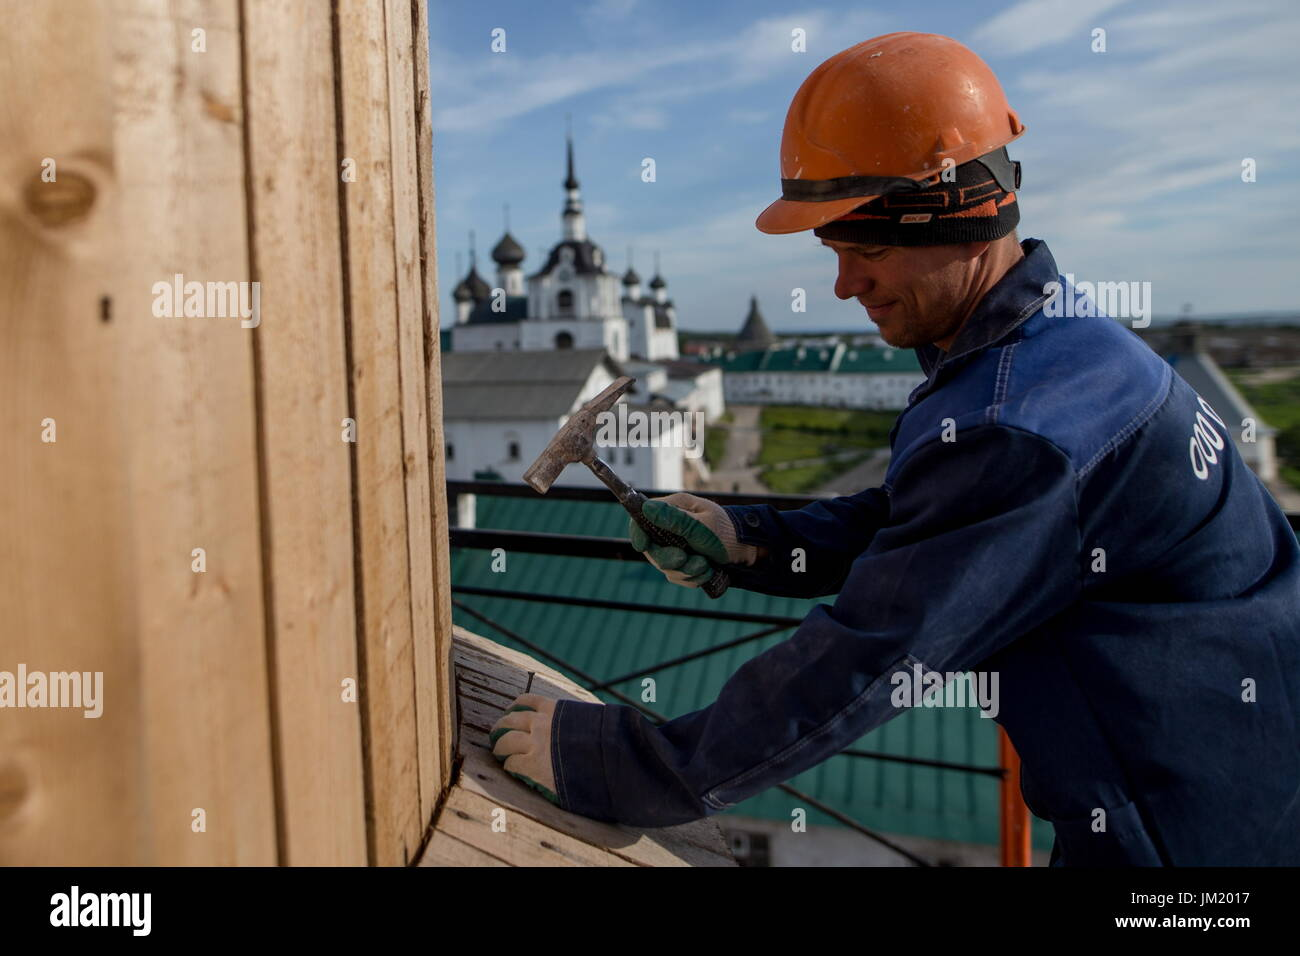 Arkhangelsk Region, Russia. 14th July, 2017. Restoration works at the Solovetsky Monastery situated on the Solovetsky Stock Photo